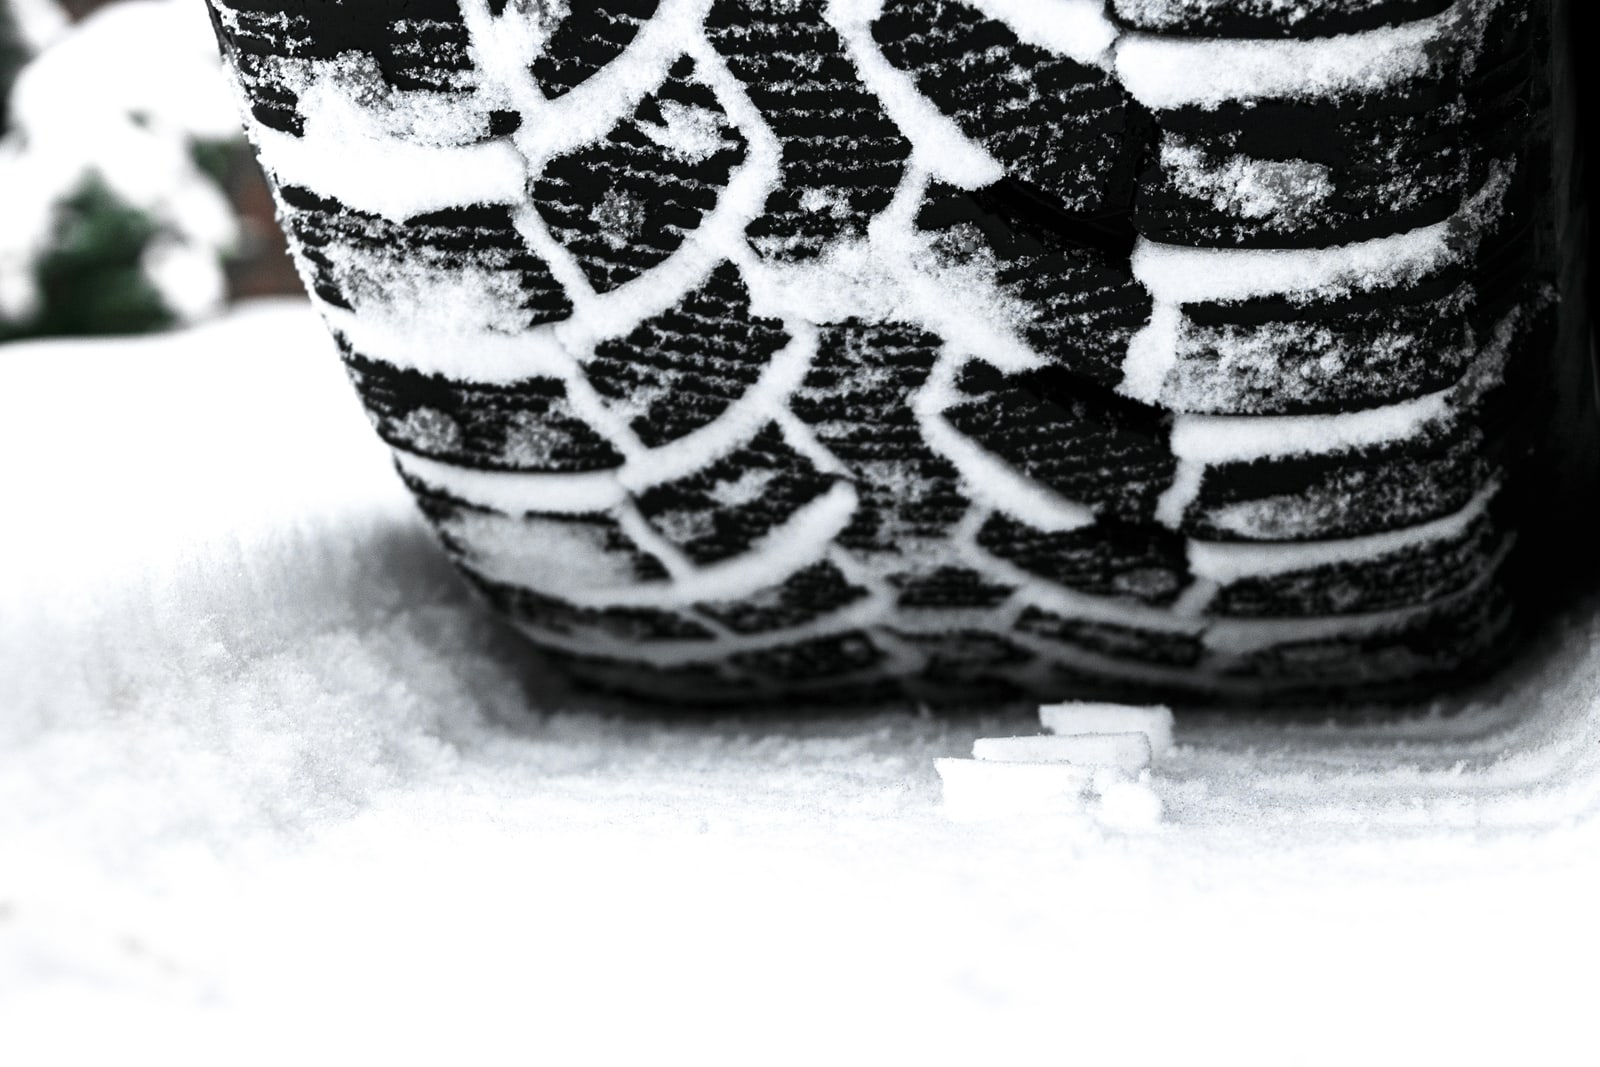 bigstock-The-Car-Tire-In-The-Snow-Close-274716940